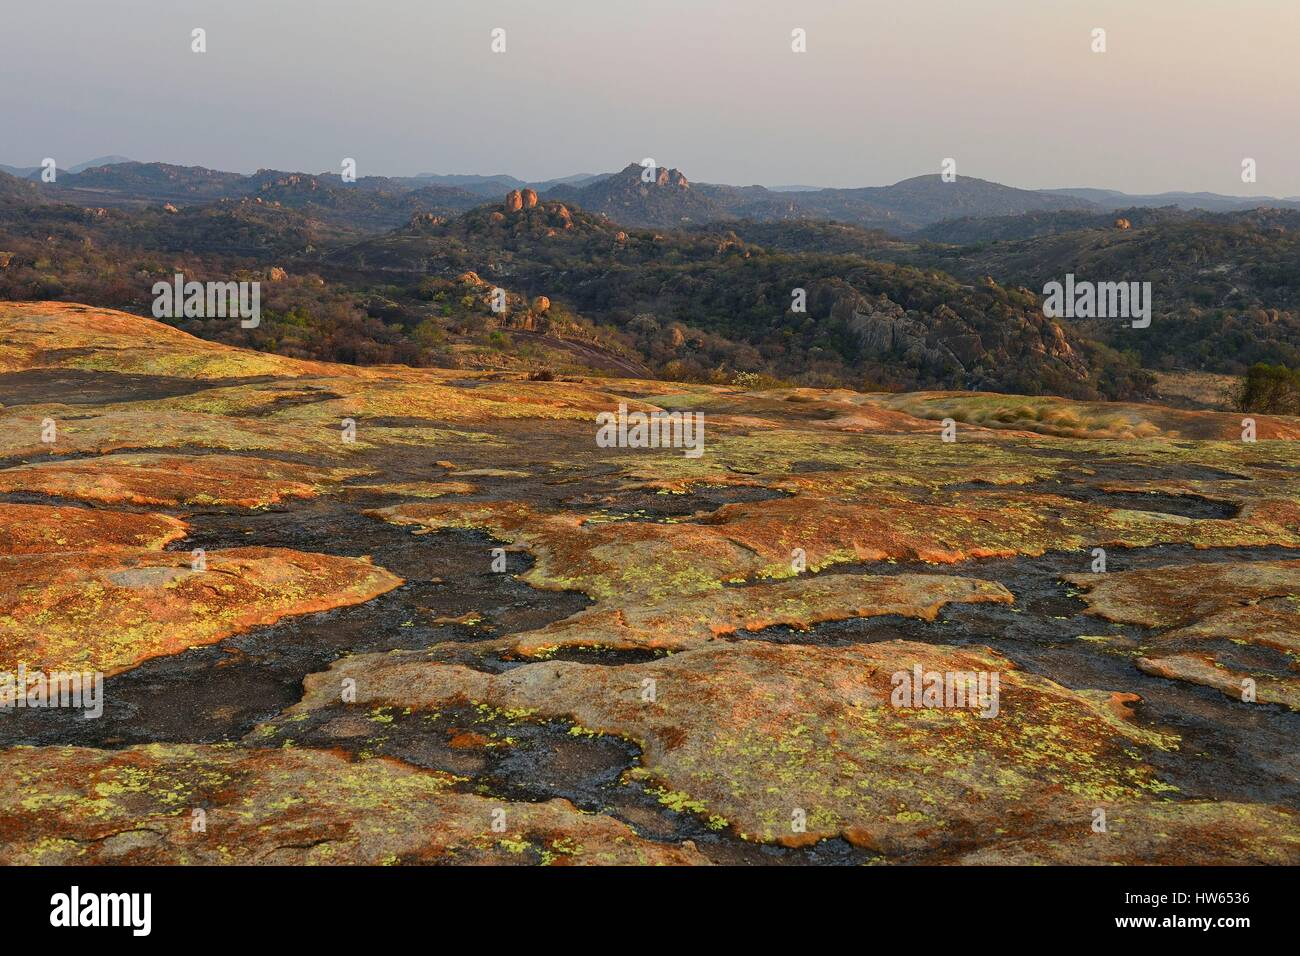 Zimbabwe Matabeleland South Province Matobo or Matopos Hills National Park listed as World Heritage by UNESCO rock - Stock Image